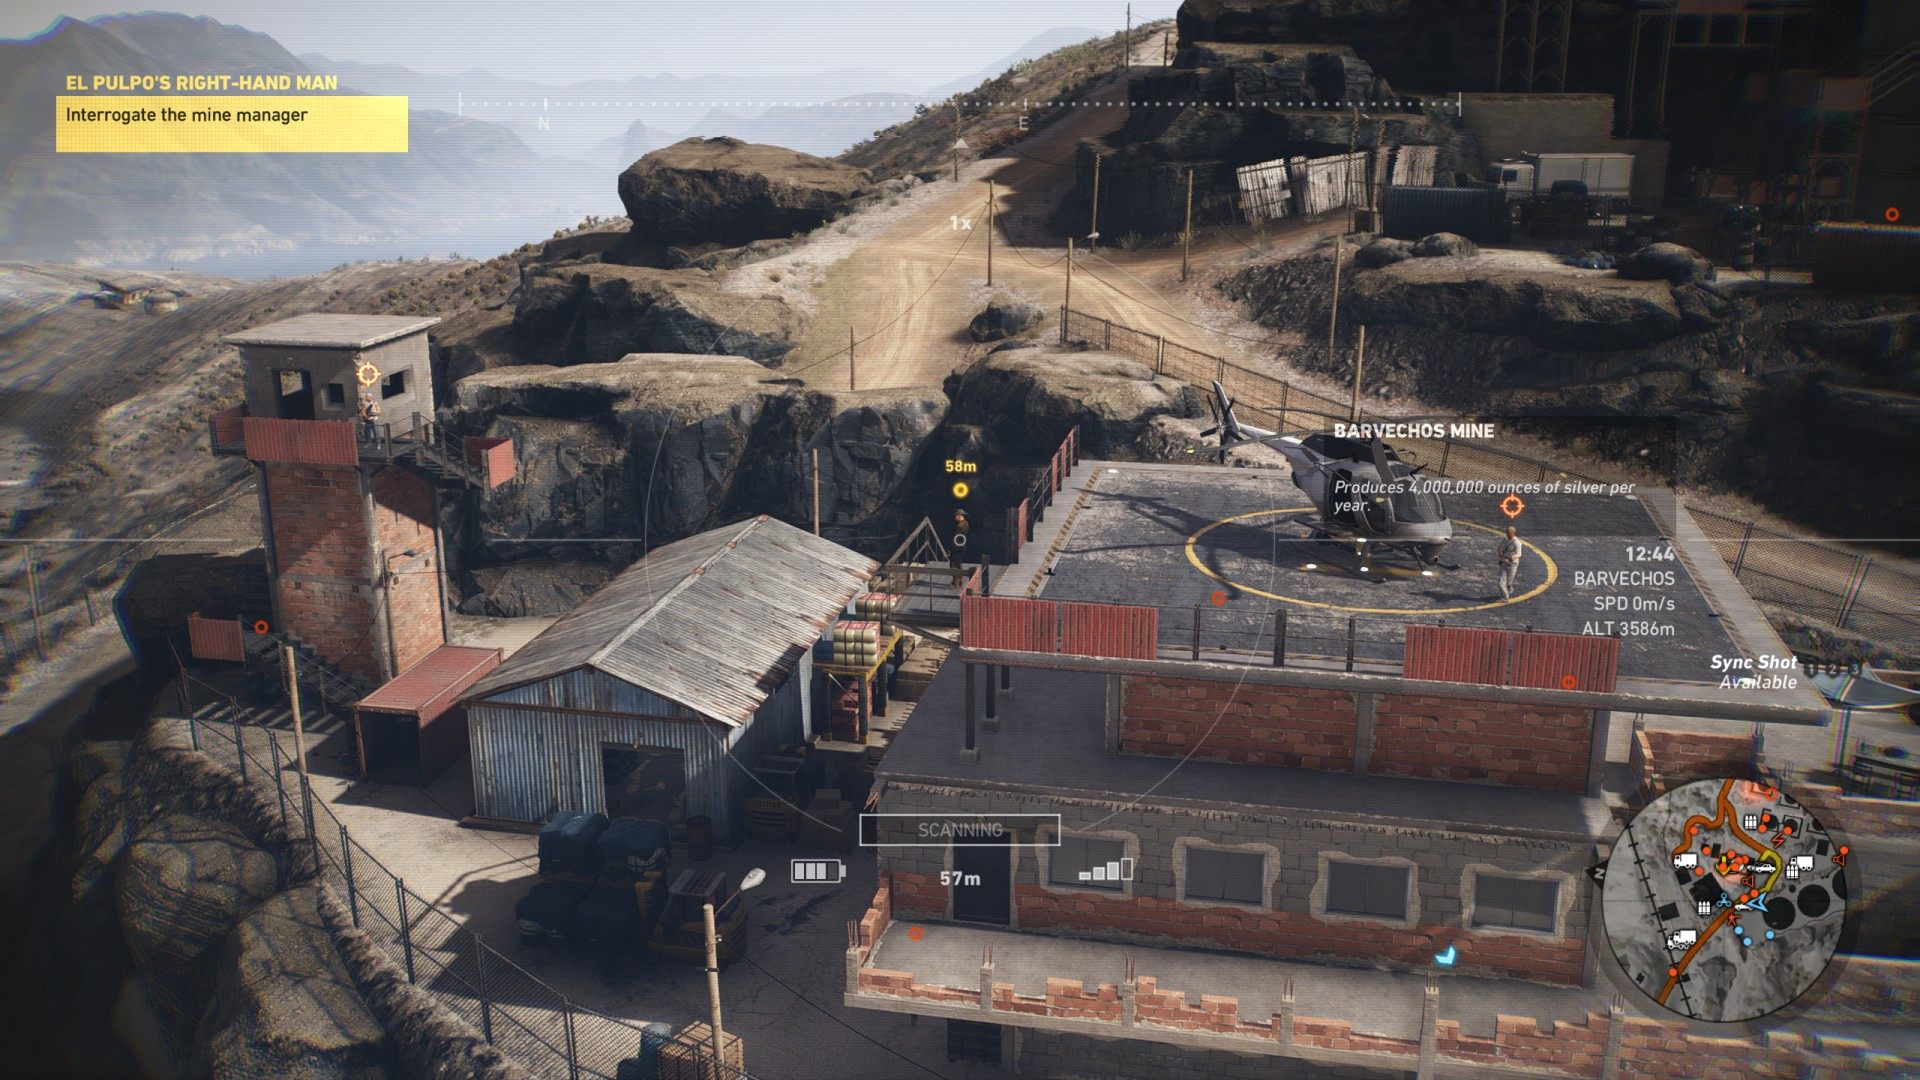 interrogate the mine manager